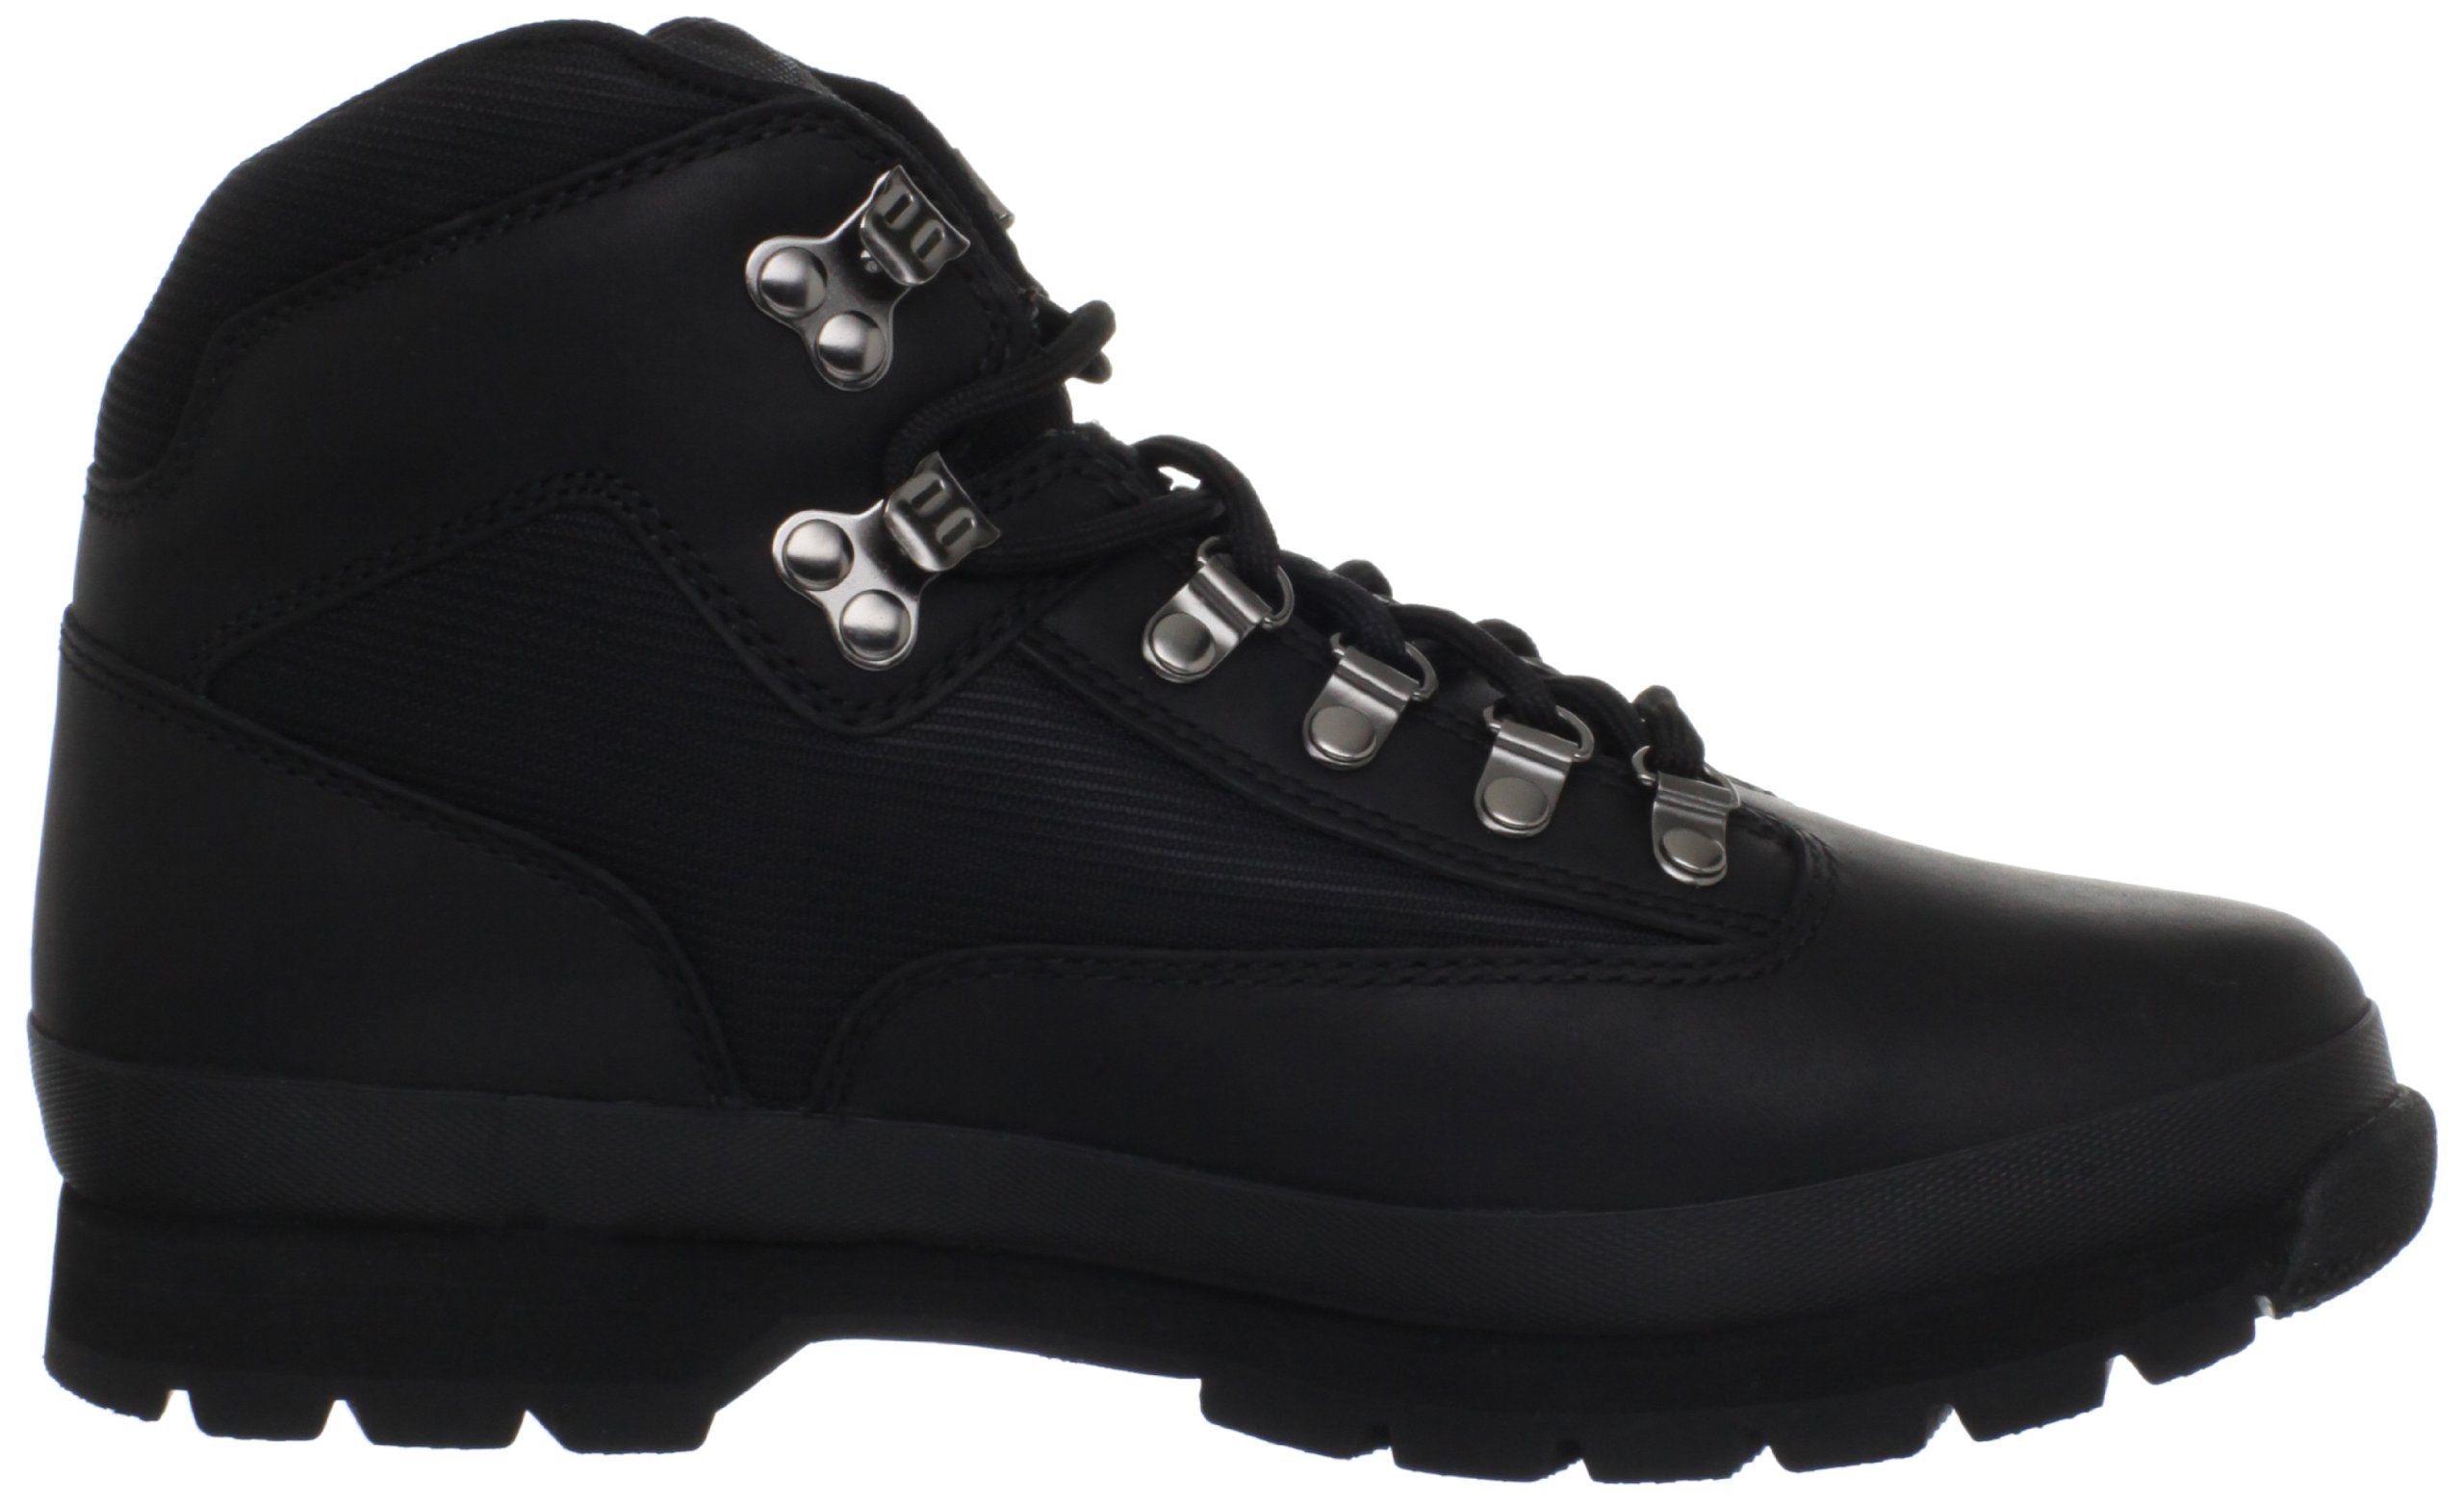 Timberland Men's Euro Boot,Black Smooth,10.5 M US by Timberland (Image #6)